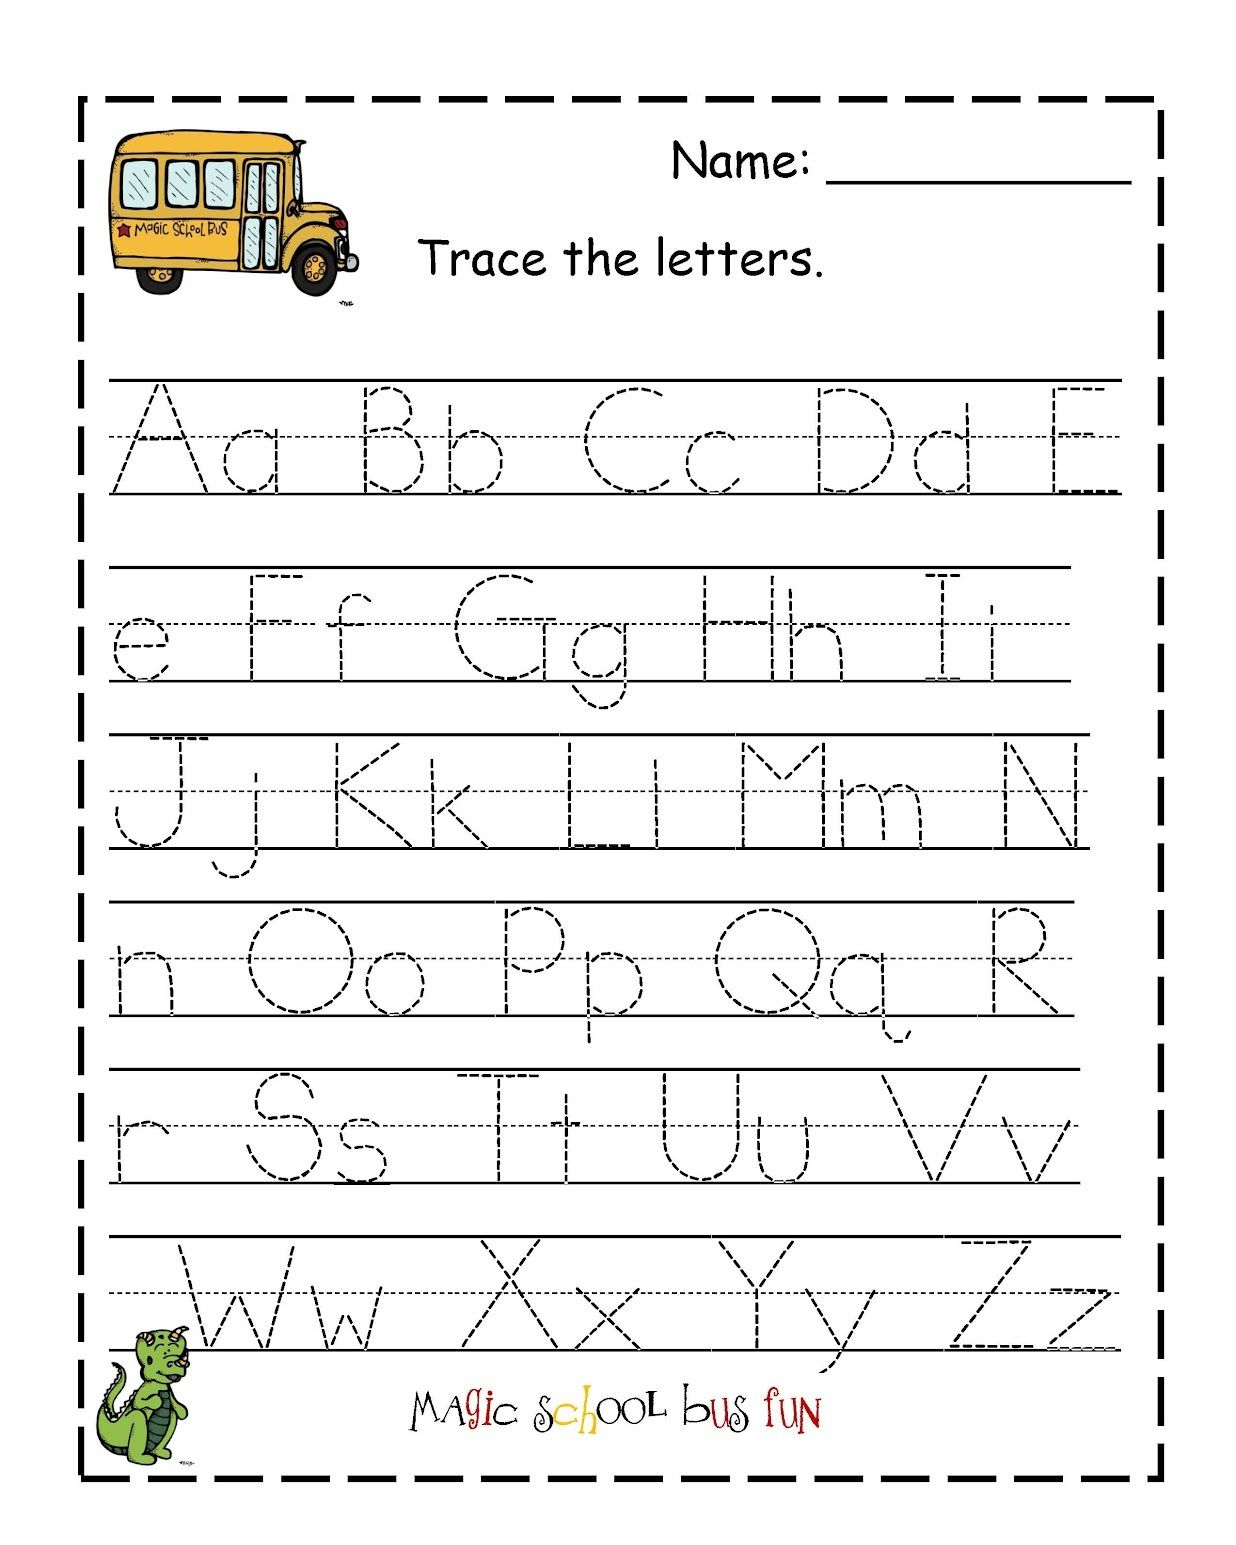 Coloring Book : Tracing Letter Worksheets Preschool Free intended for Tracing Letters And Numbers Free Worksheets